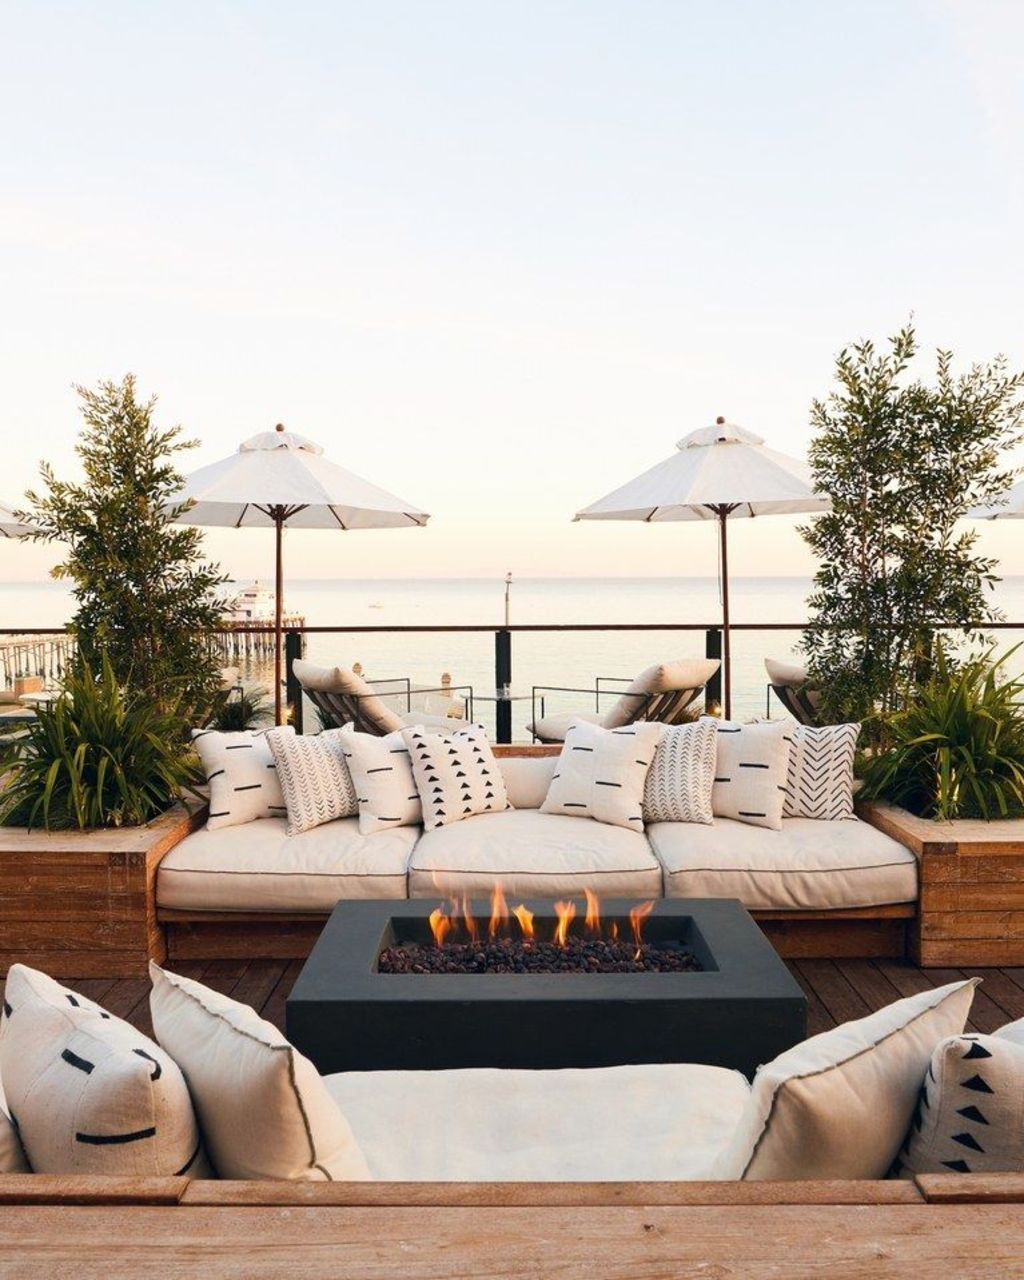 Classic Mainstay Of An Outdoor Space With The Fire Pit Many Of Us